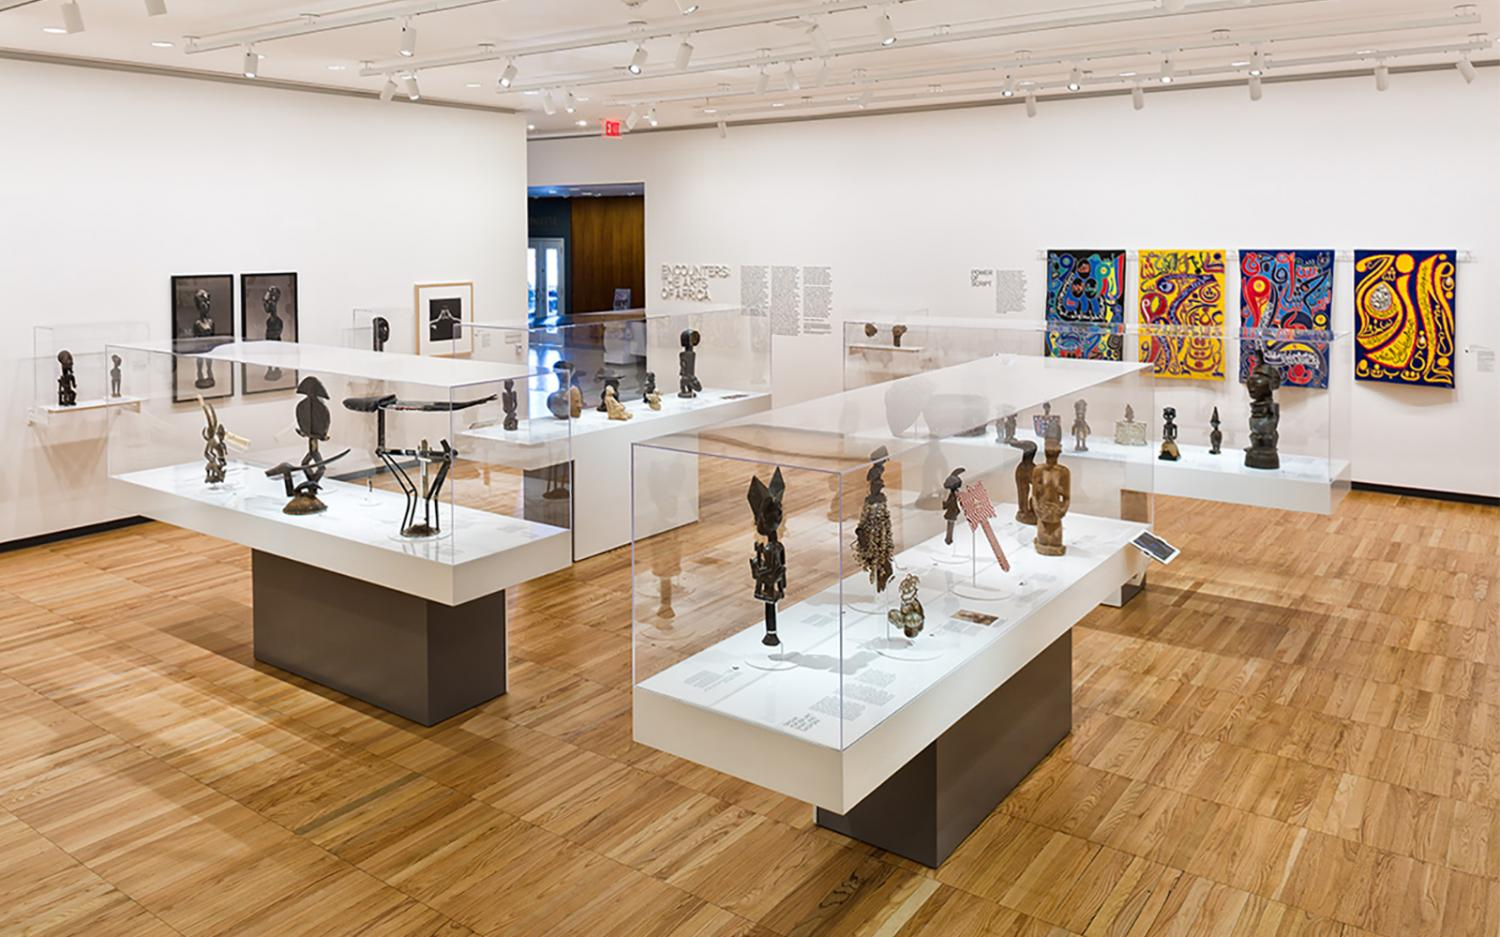 Encounters: The Arts of Africa, installation view at Krannert Art Museum, 2012. Photo by Chris Brown